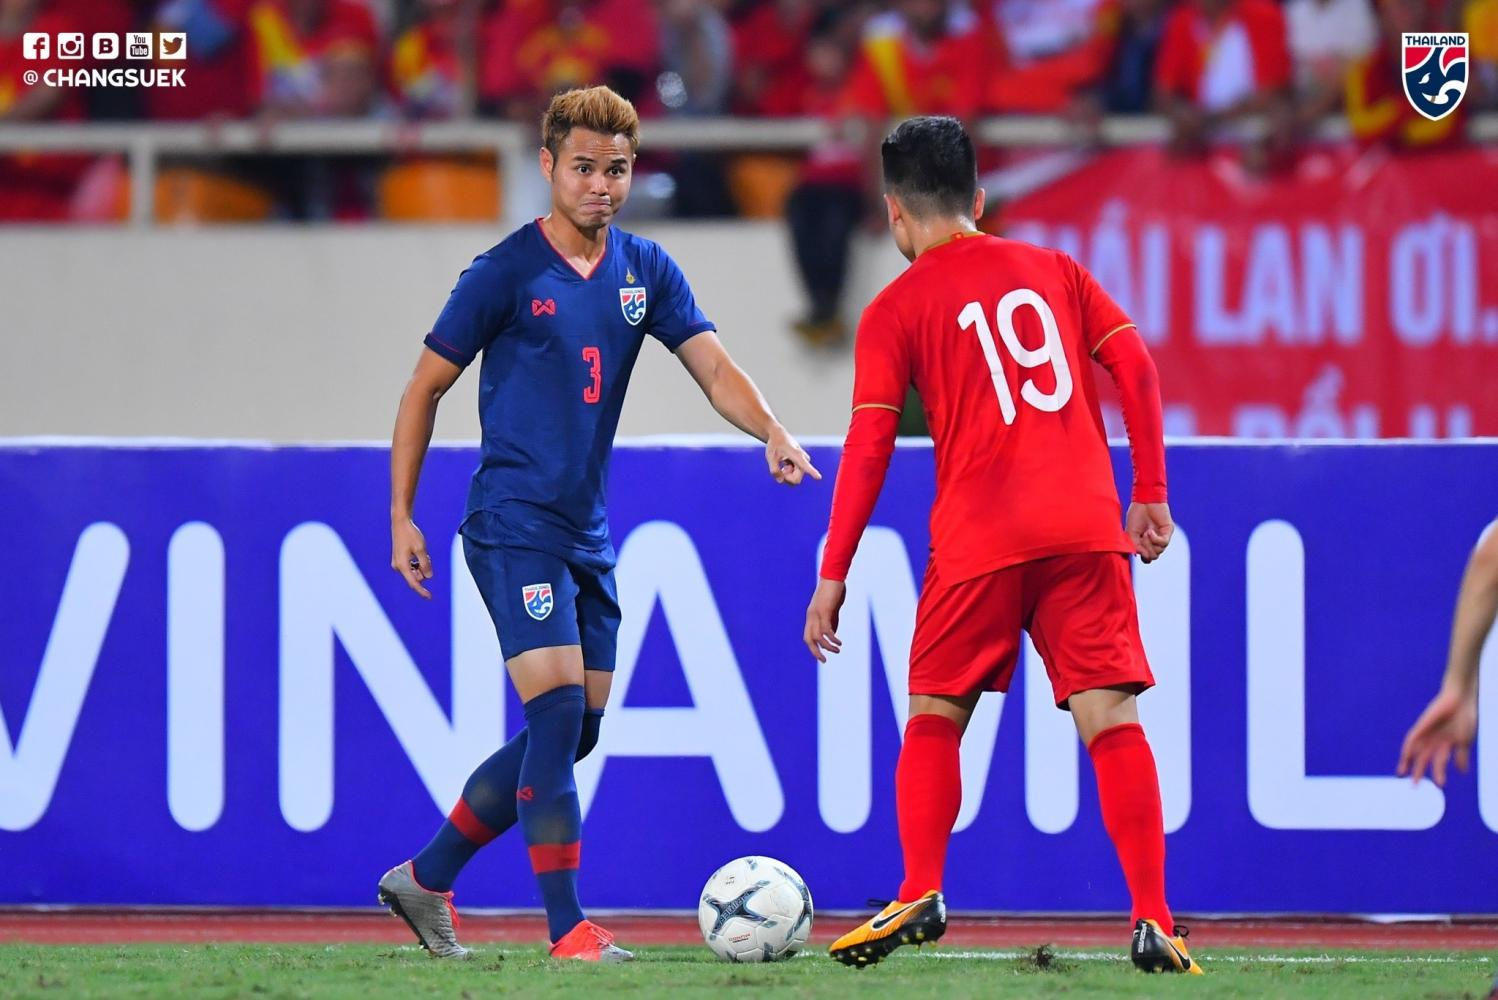 Thailand's Theerathon Bunmathan plays against Vietnam during a World Cup qualifier in Hanoi on Tuesday.